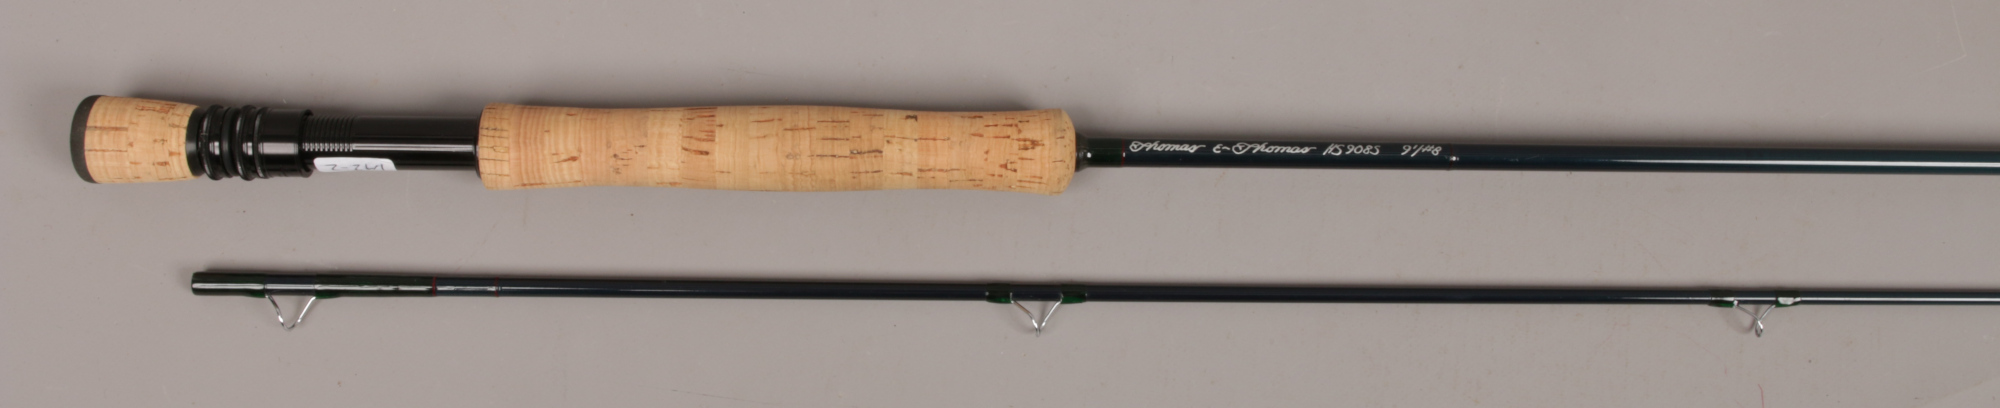 Lot 402 - A Thomas & Thomas two part fly fishing rod No. 74 / 387 HS 9085 91/ # 8 with canvas bag.